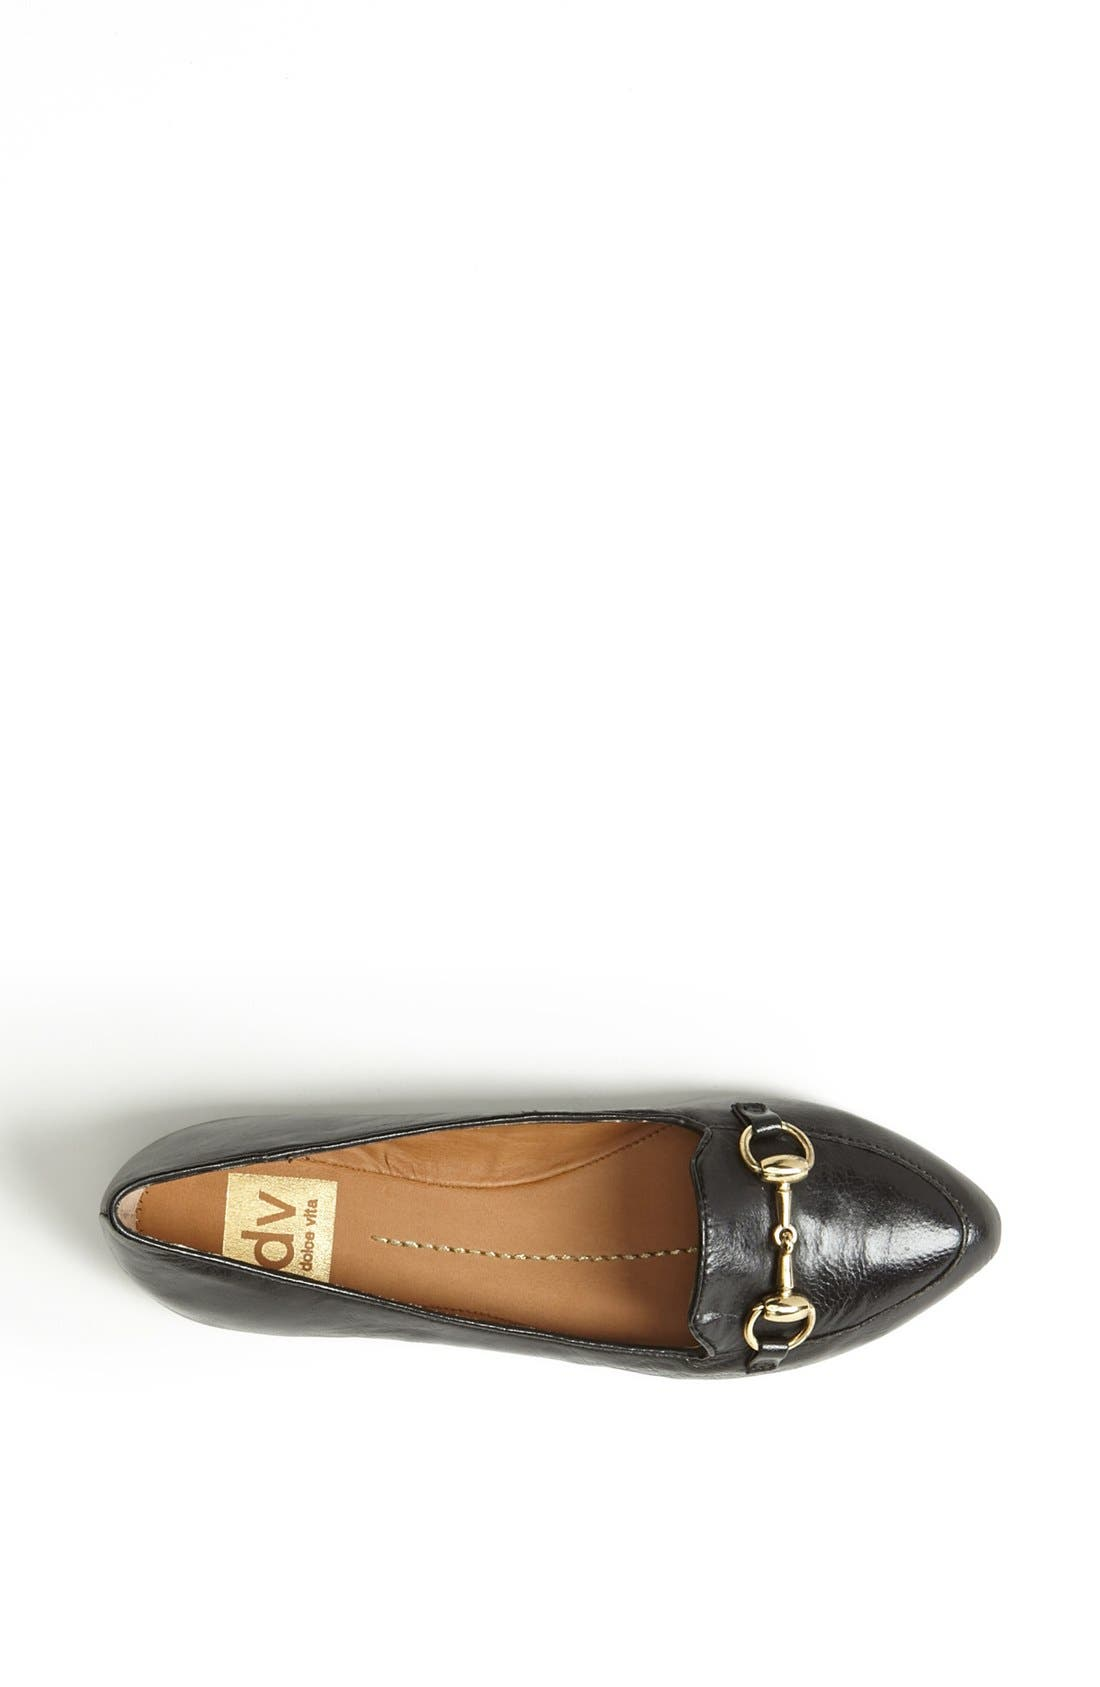 DV BY DOLCE VITA,                             'Langely' Flat,                             Alternate thumbnail 4, color,                             001